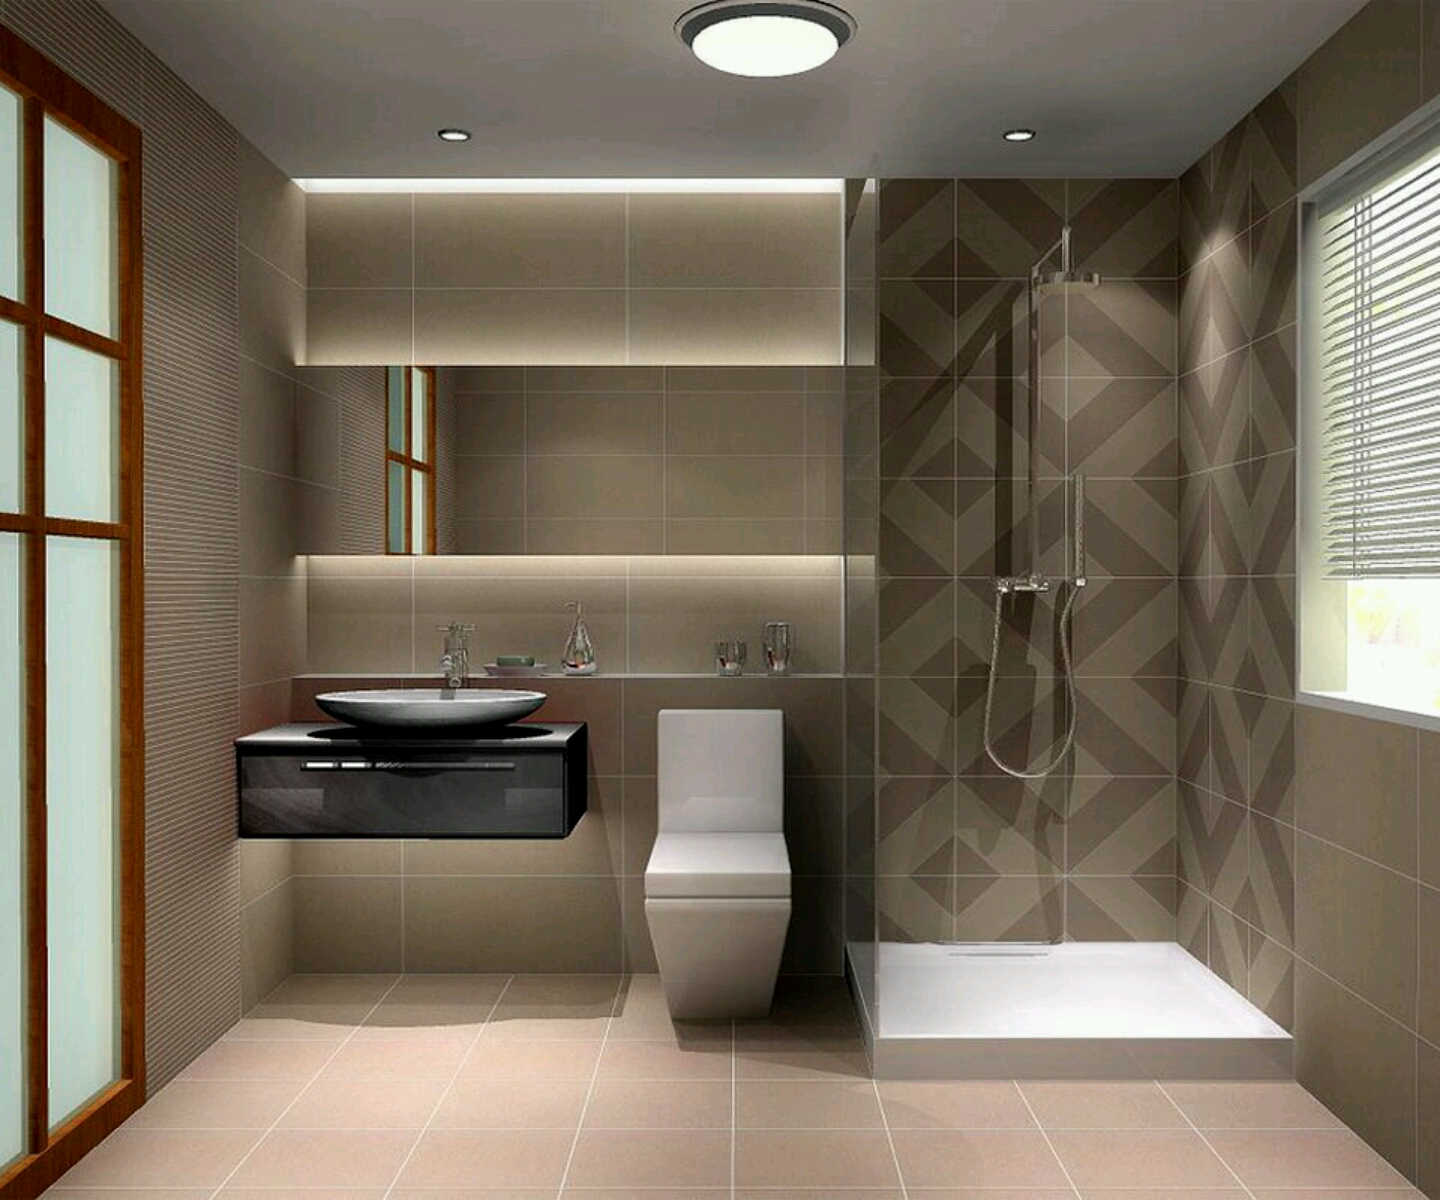 Bathroom Design Pictures Pleasing With Small Modern Bathroom Design Idea Photo